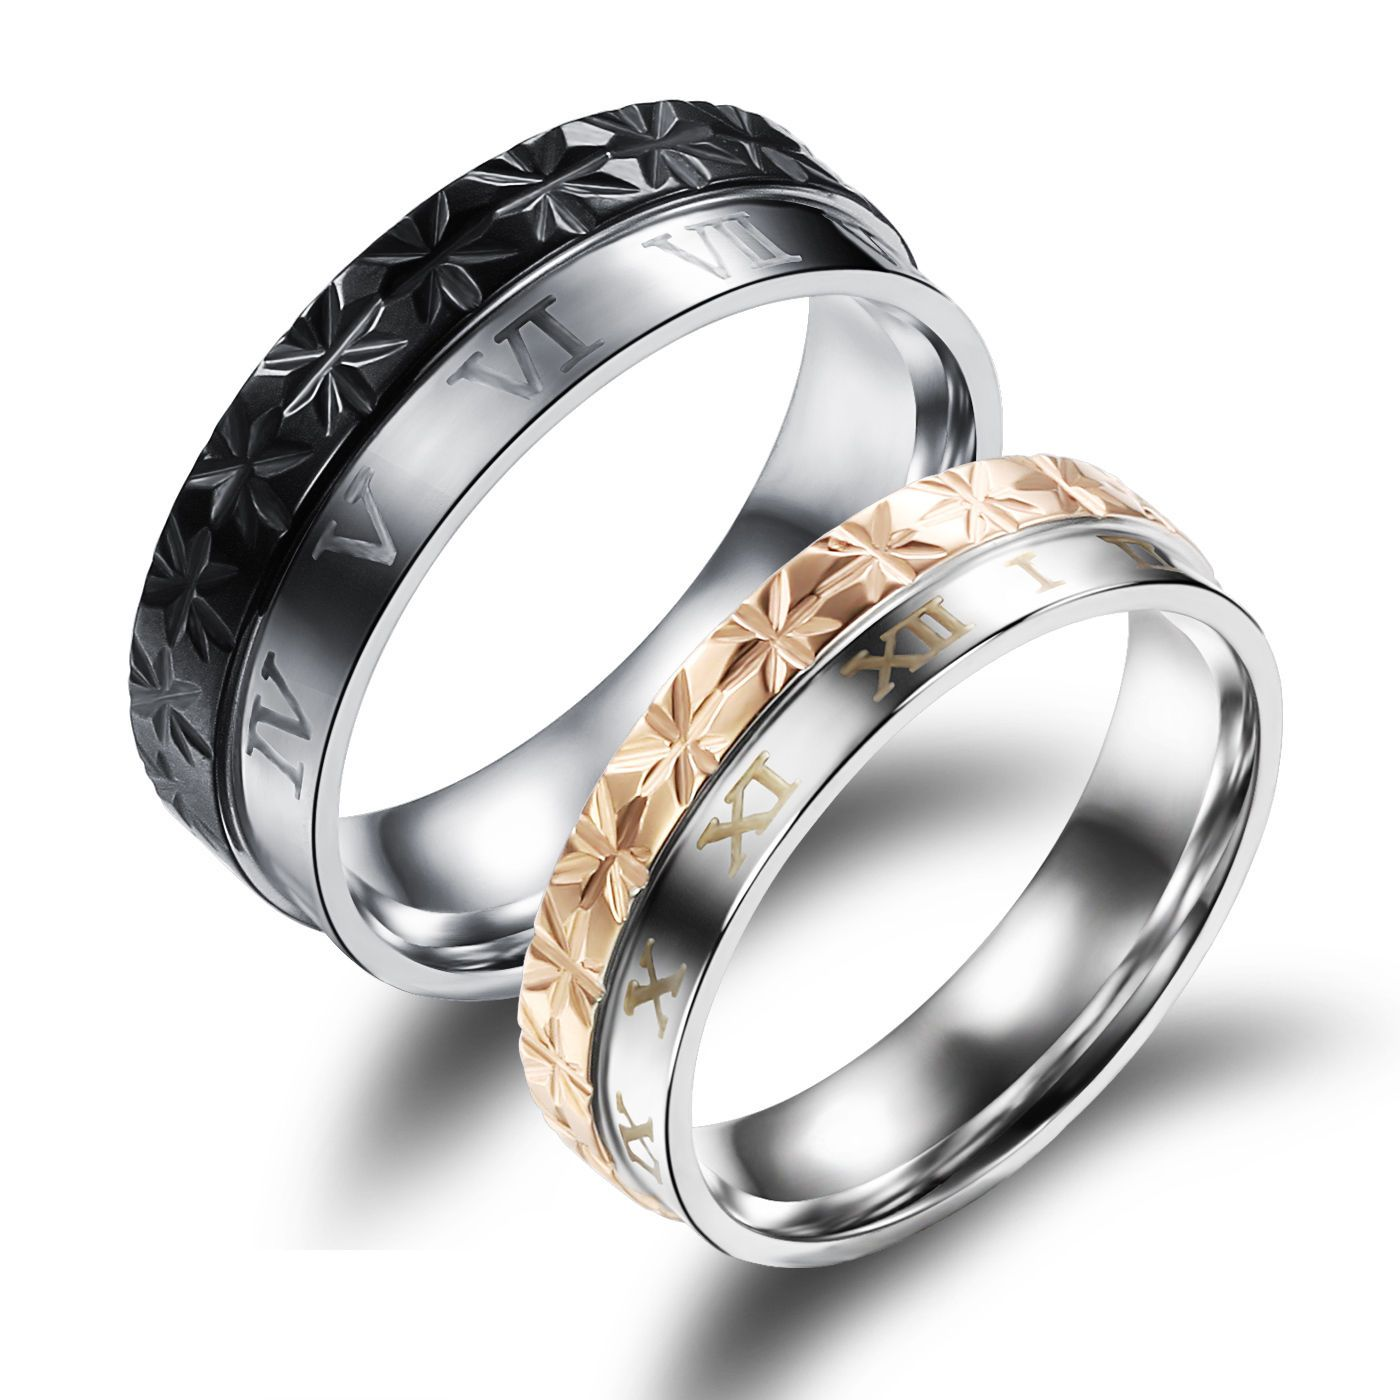 JC Fashion Jewelry Love Heart Matching Set Stainless Steel Wedding Bands His and Her Promise Rings